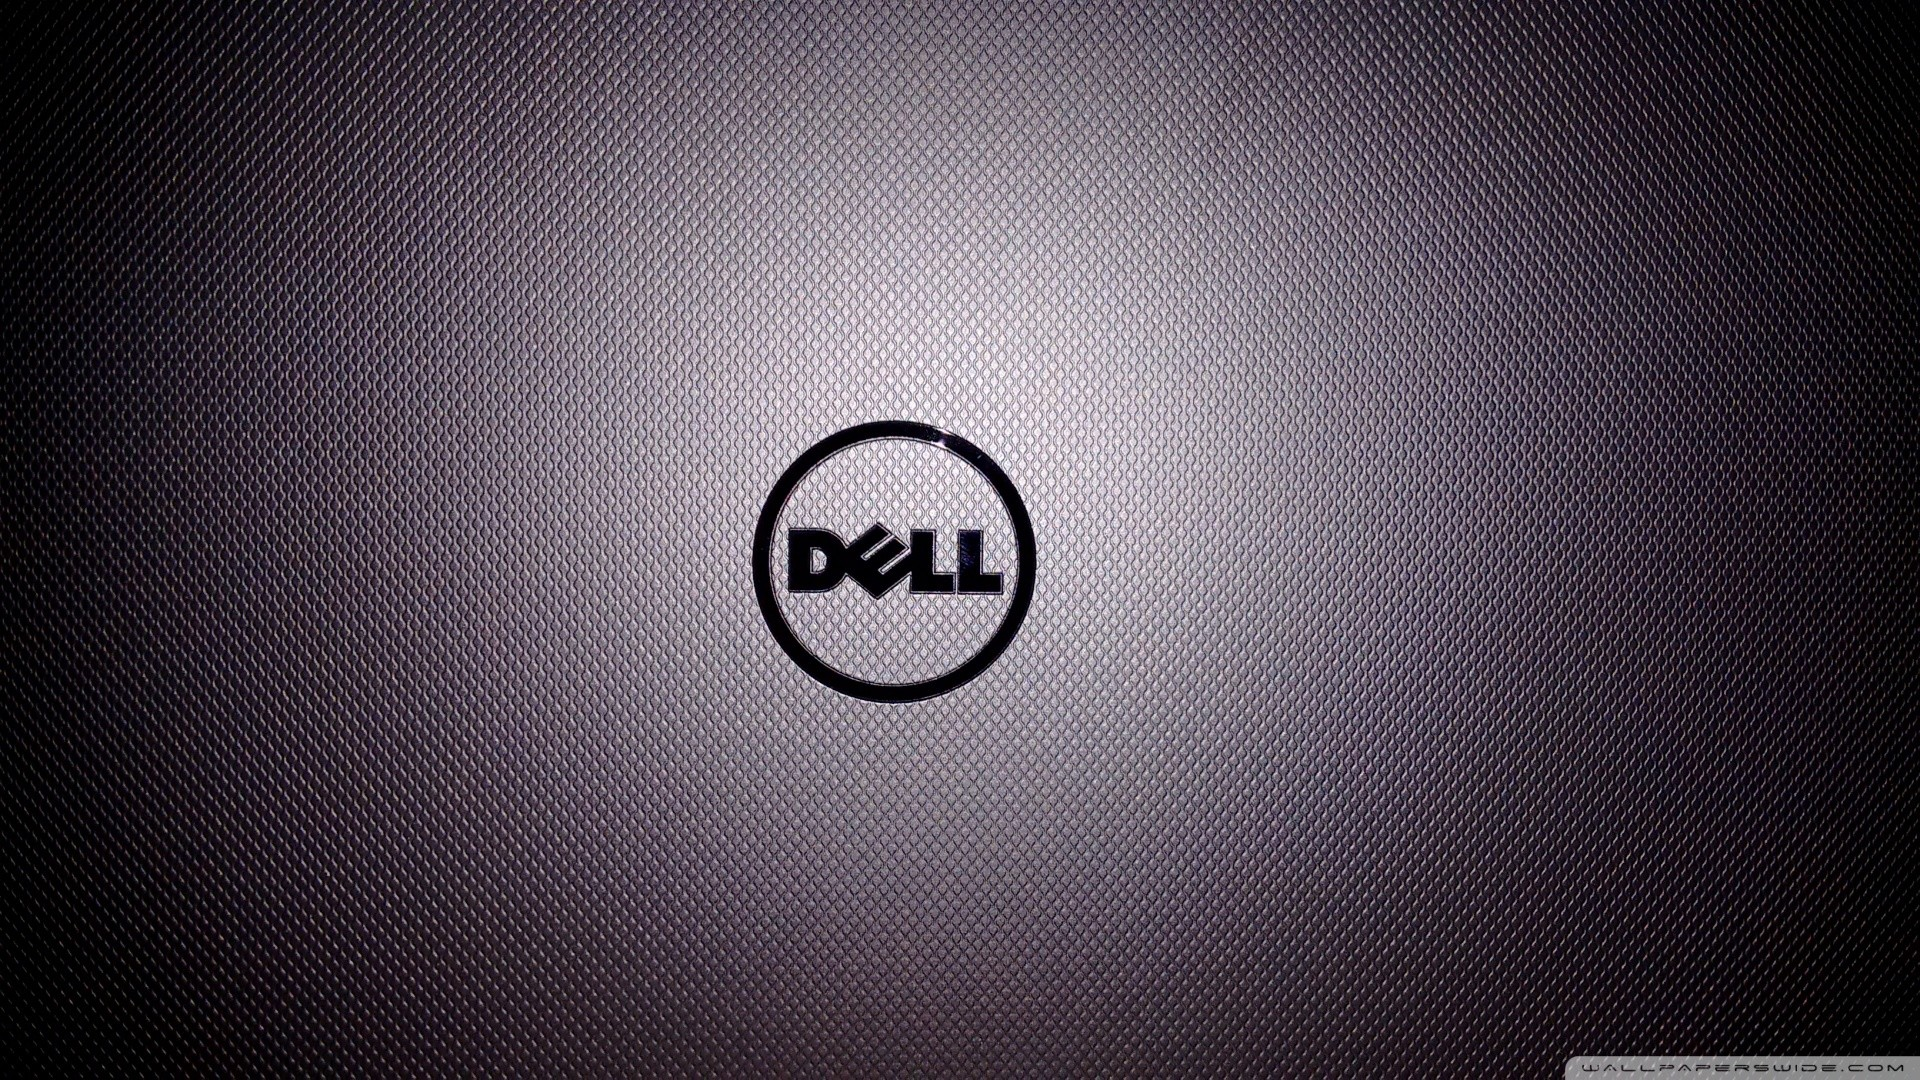 Dell HD Wallpaper 1920x1080 (71+ images)